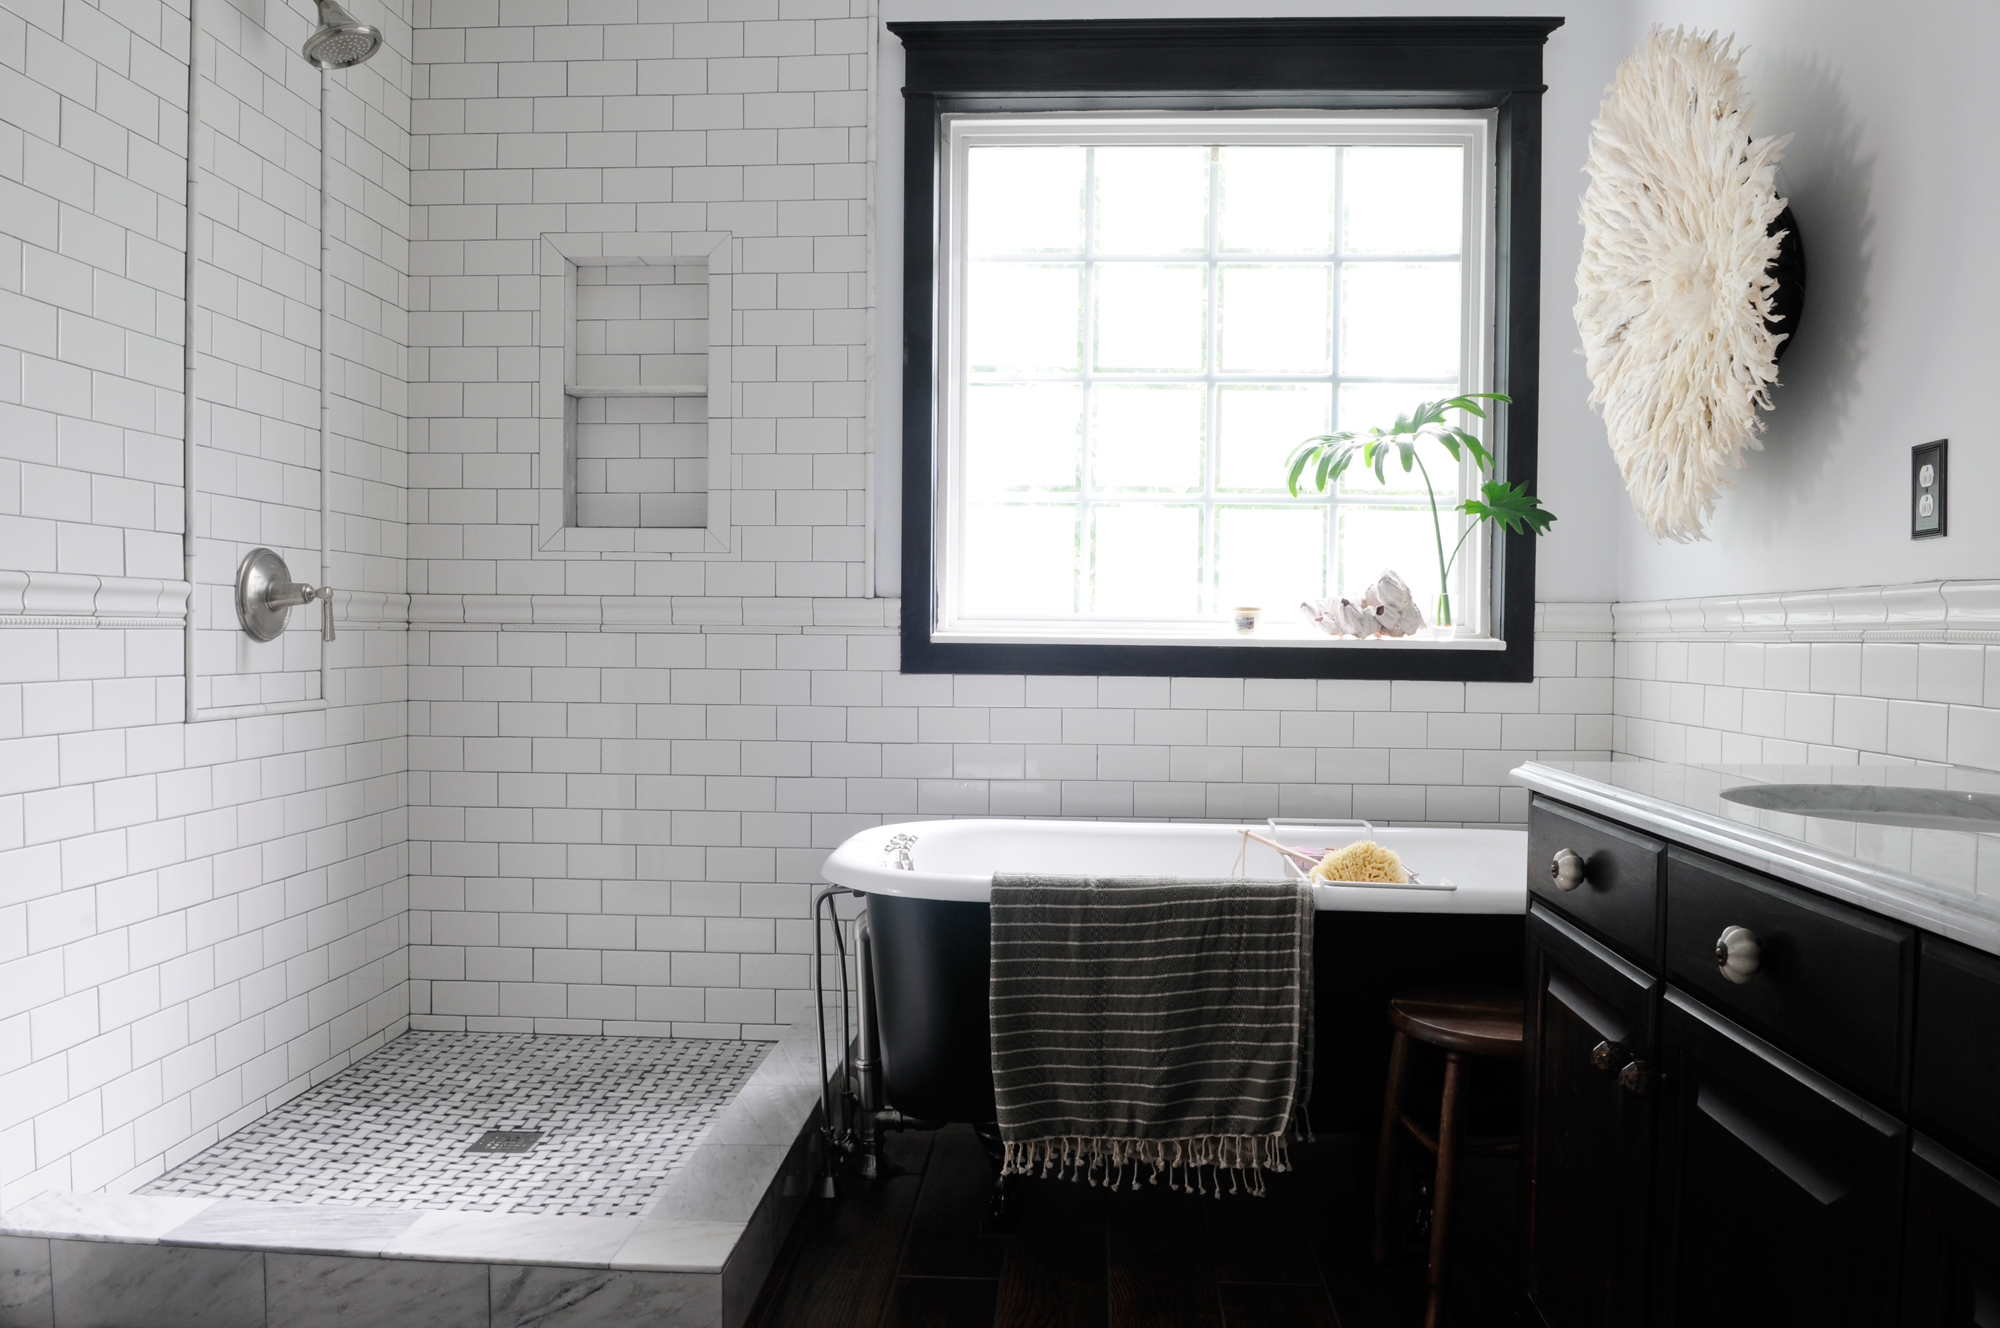 35 nice pictures and photos of old bathroom tile for Gorgeous bathroom designs